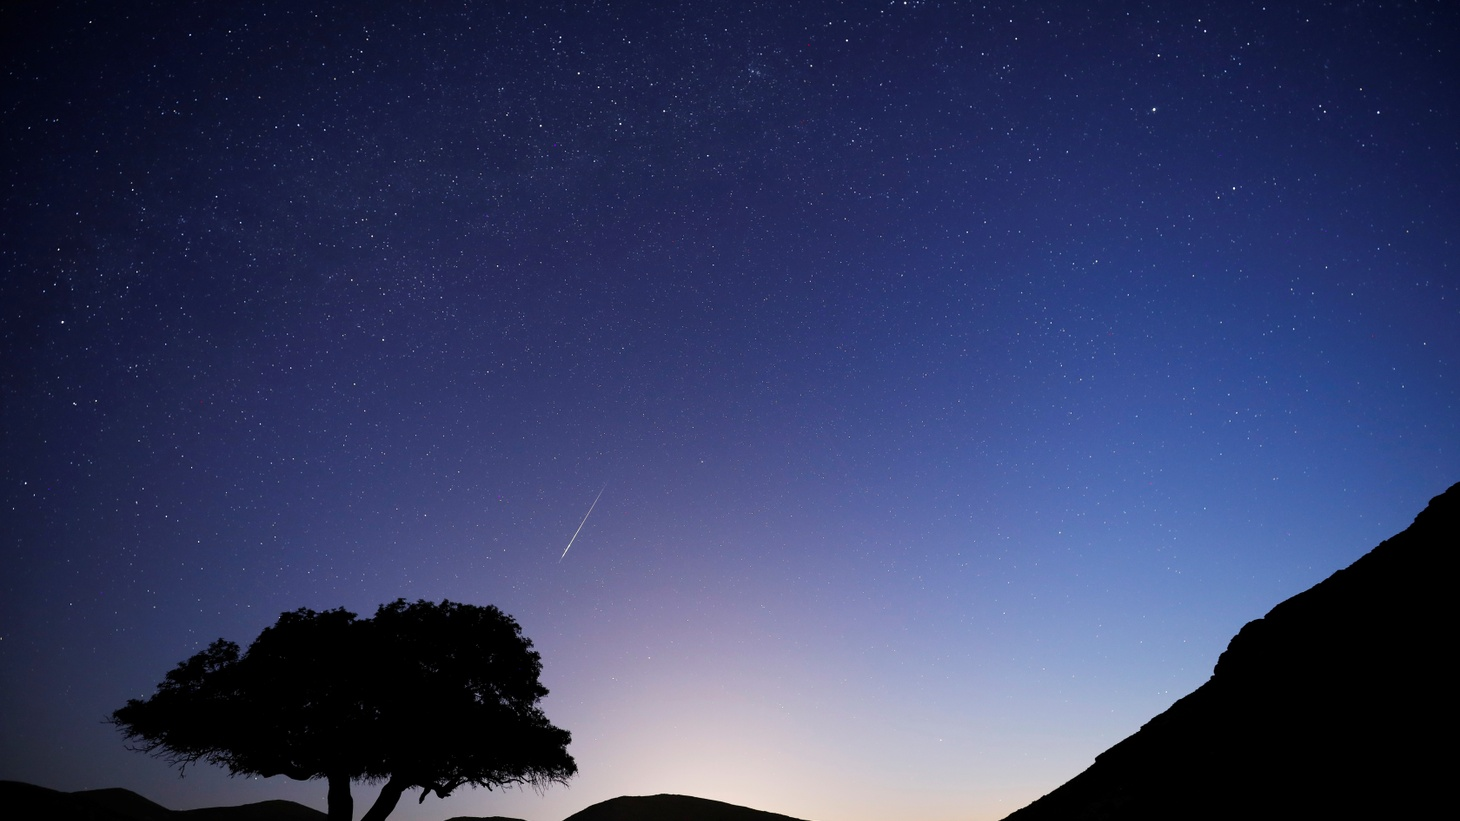 A meteor streaks across the sky in the early morning during the annual Perseid meteor shower near the town of Mitzpe Ramon, southern Israel, August 13, 2019. This year's shower is expected to peak tonight.